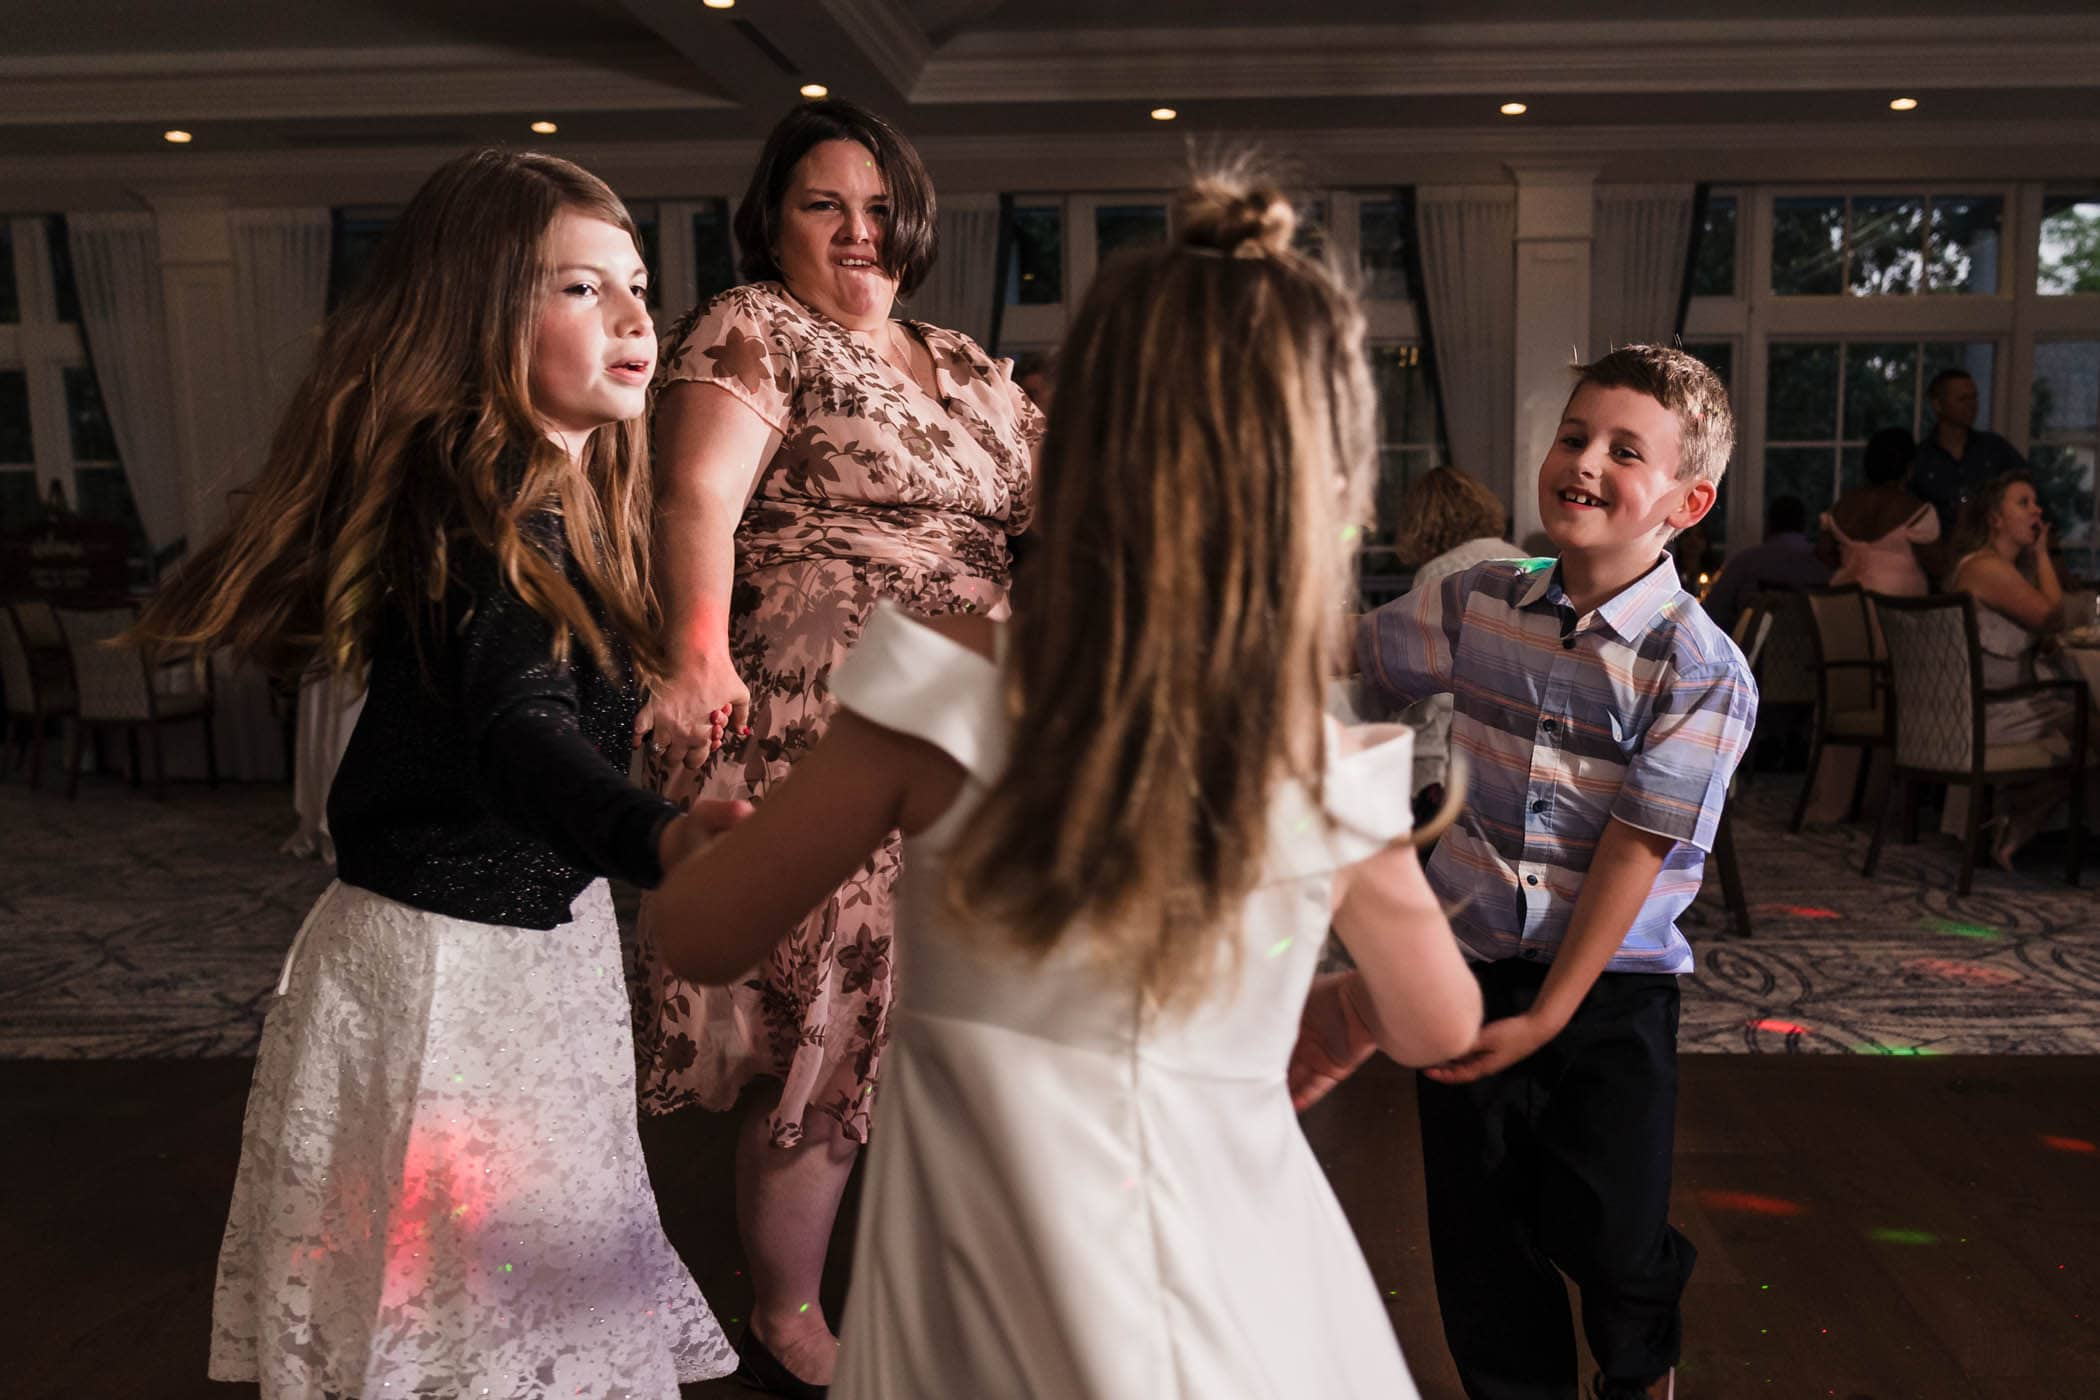 Kids and adult on the dance floor Dataw Island Club House by Susan DeLoach Photography SC wedding photographers